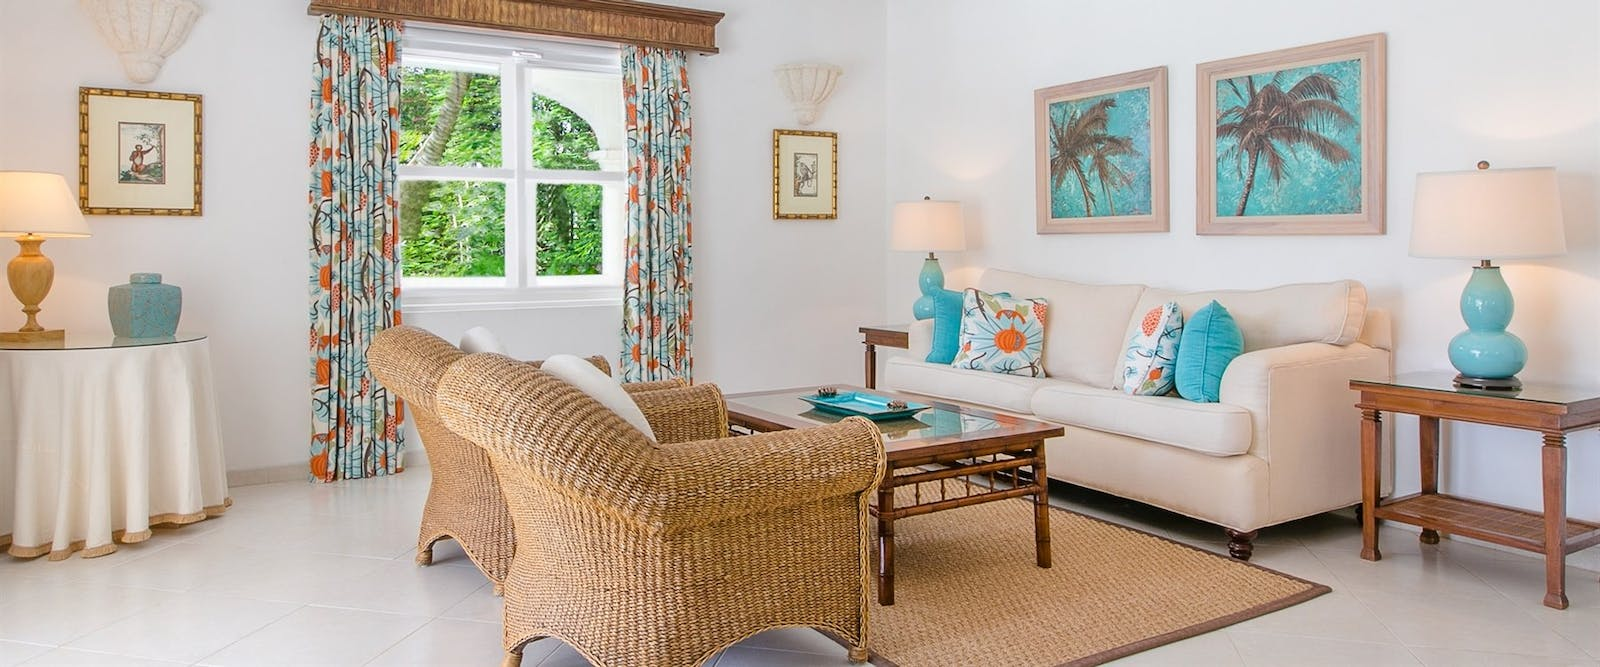 Luxury Cottage Suite Living Room at Coral Reef Club, Barbados